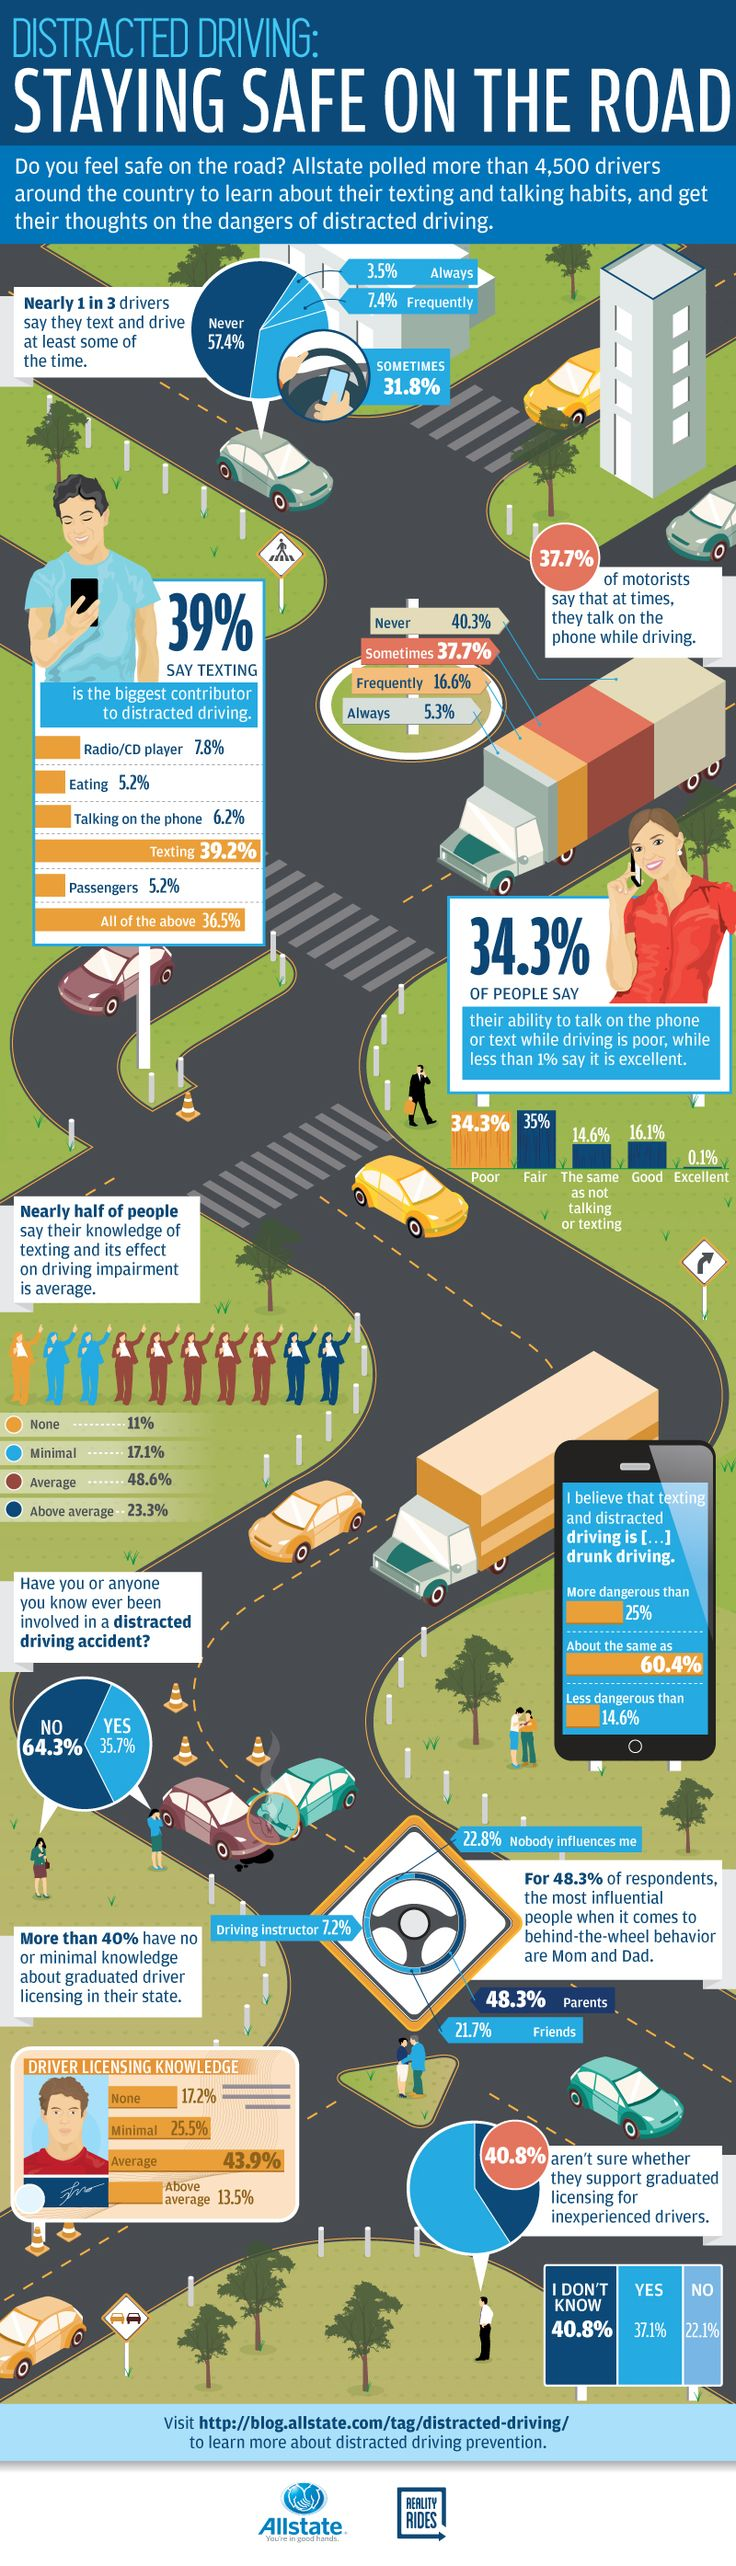 Insurance Articles & Information Distracted driving